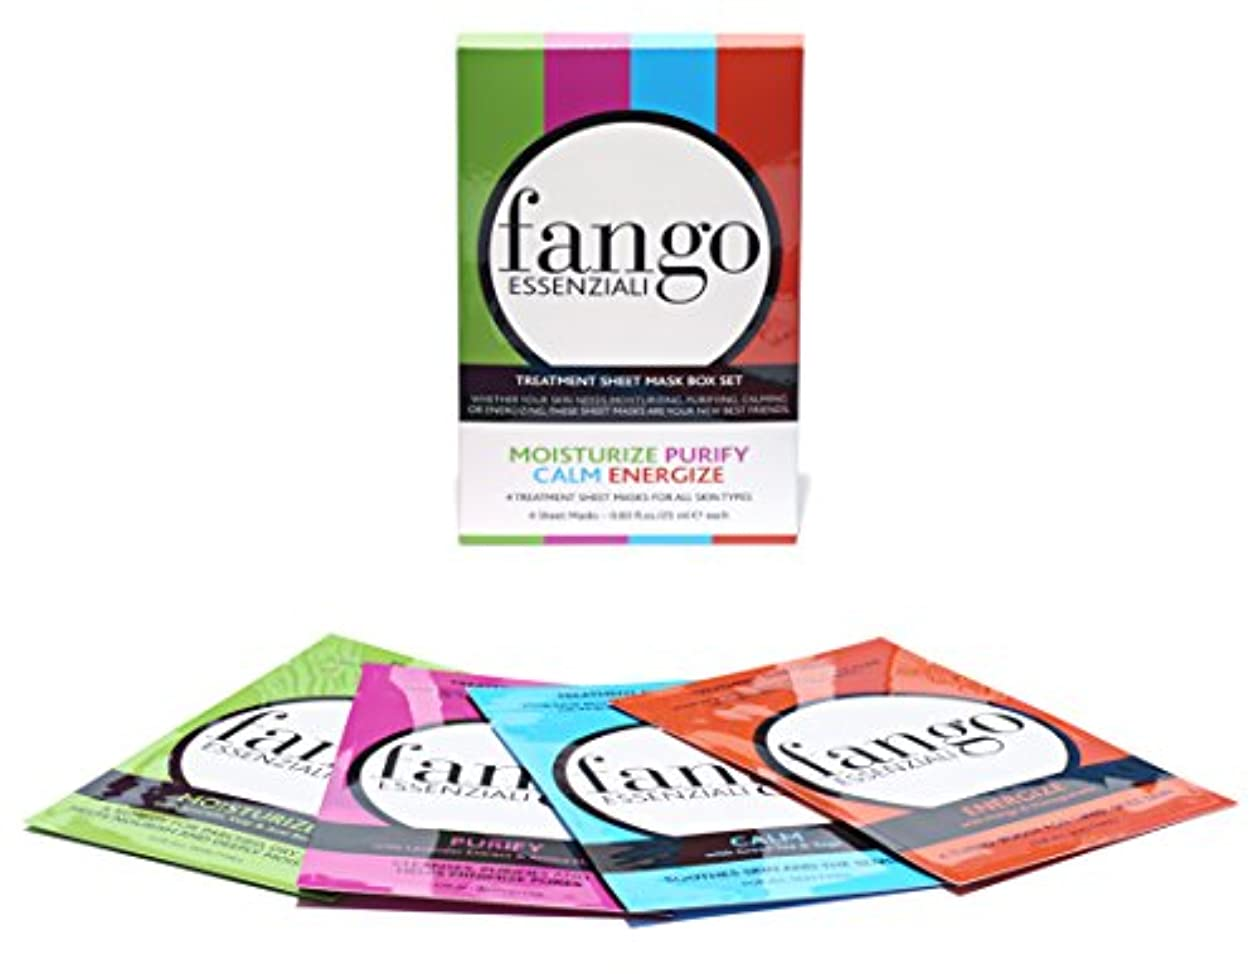 天負荷心配するボルゲーゼ Fango Essenziali Treatment Sheet Mask Box Set (1x Moisturize Mask, 1x Purify Mask, 1x Calm Mask, 1x Energize...